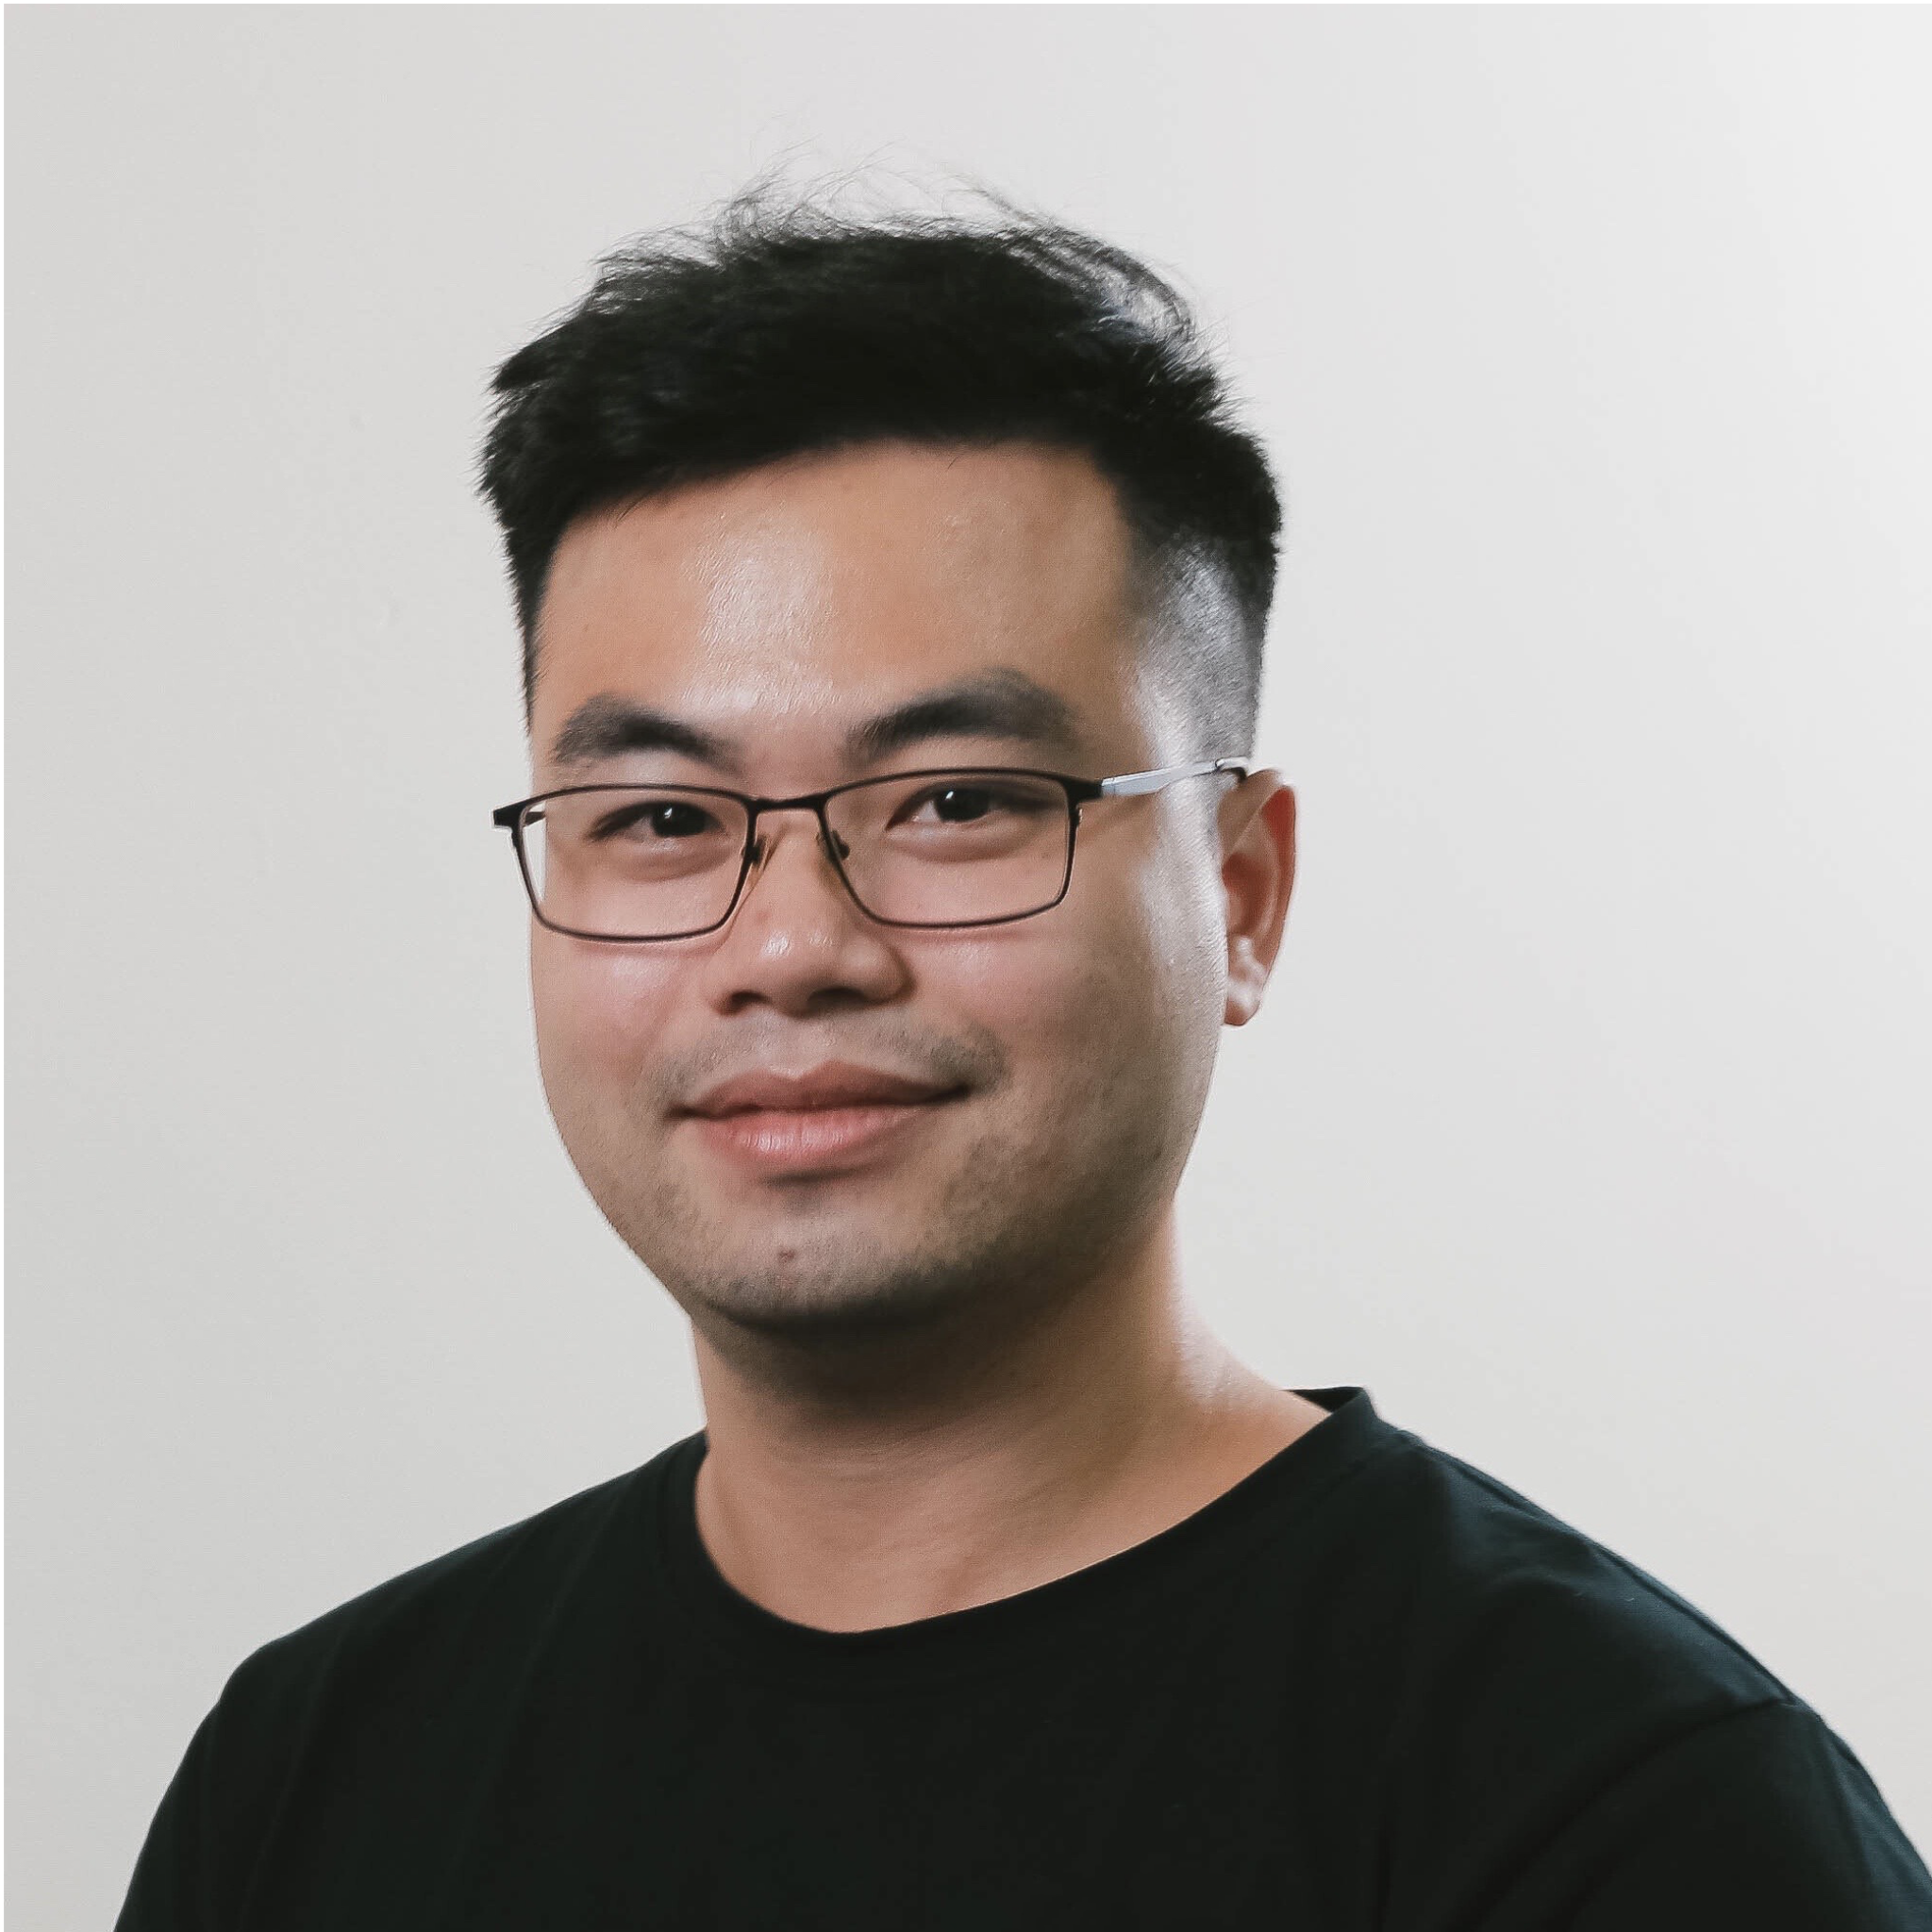 Robert Vu - Founder and CEO